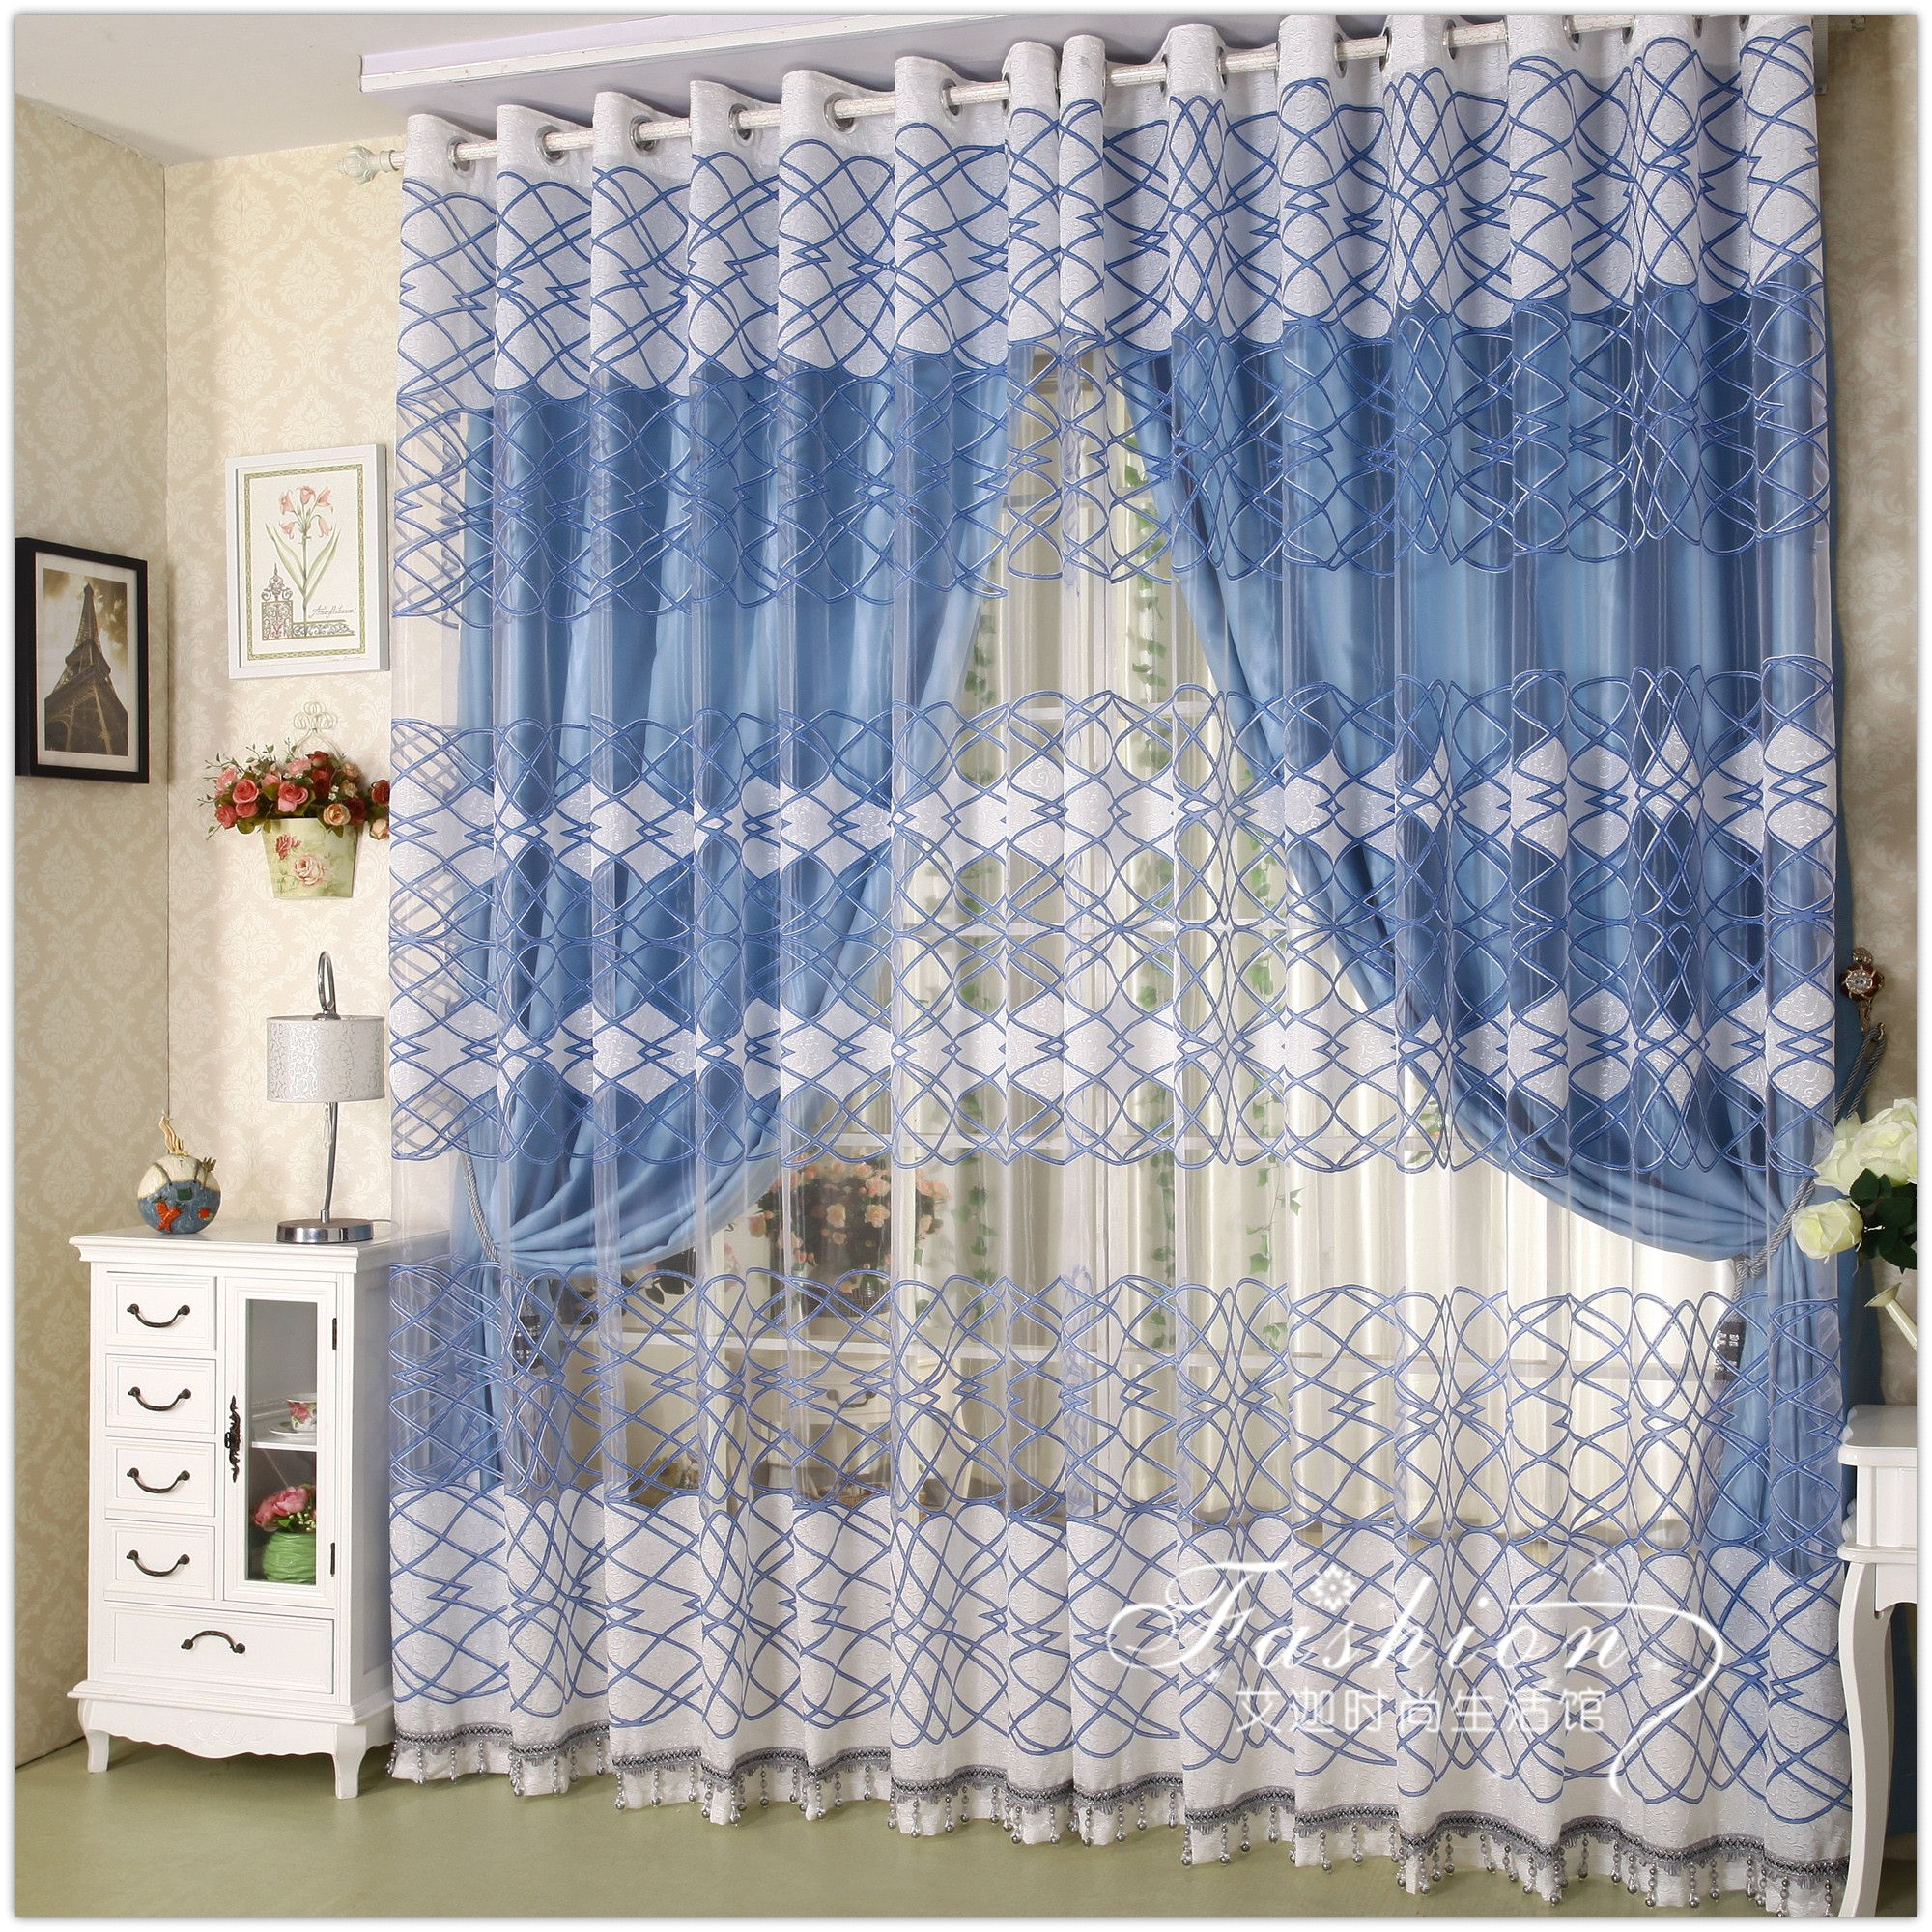 Cotton curtains for every room | Drapery Room Ideas | Cotton ...